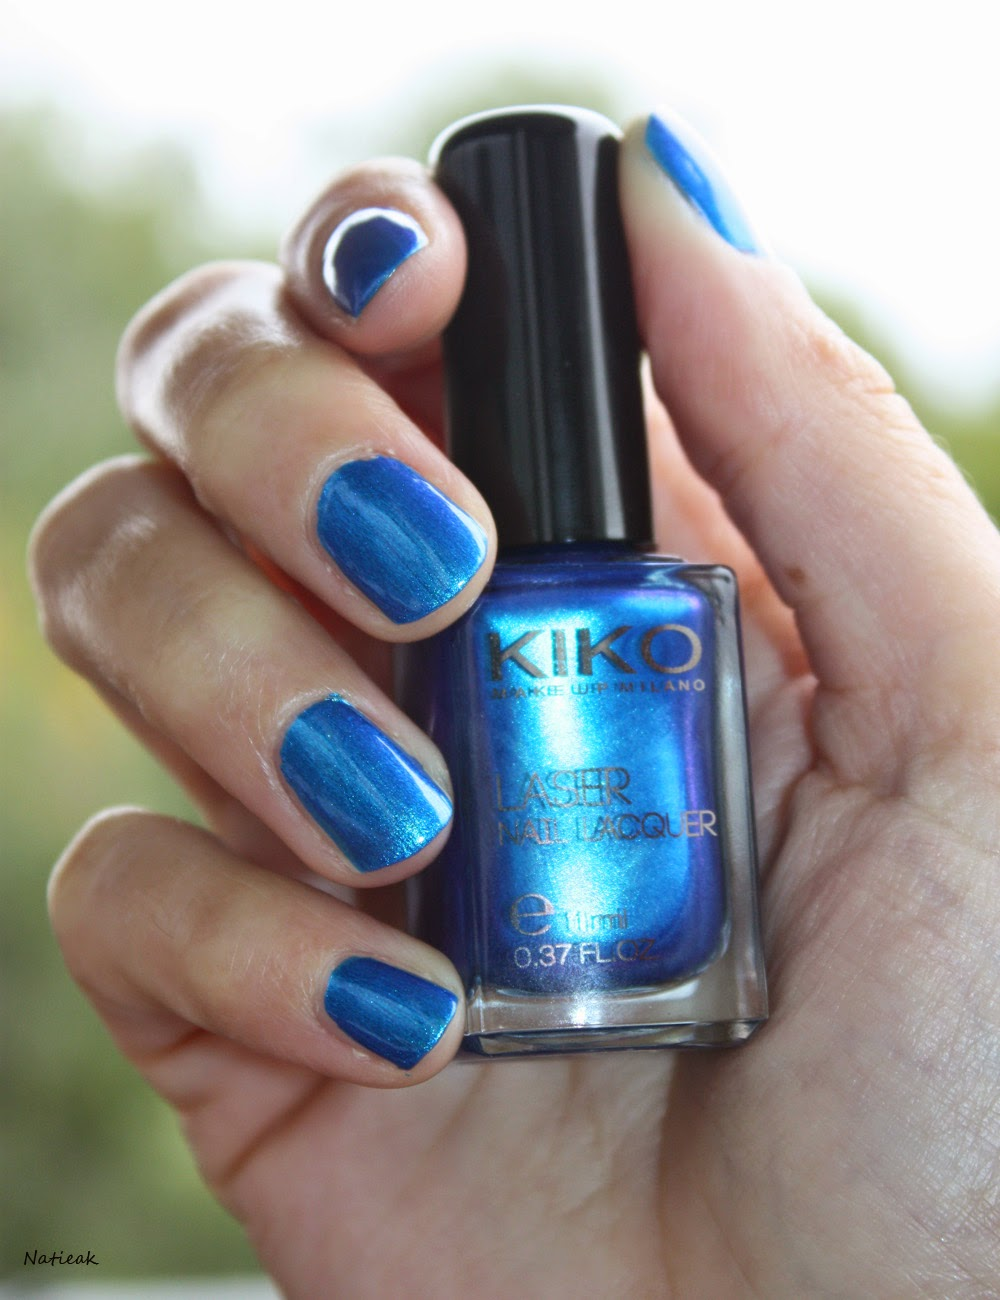 vernis à ongles Kiko 434  Psychedelic blue